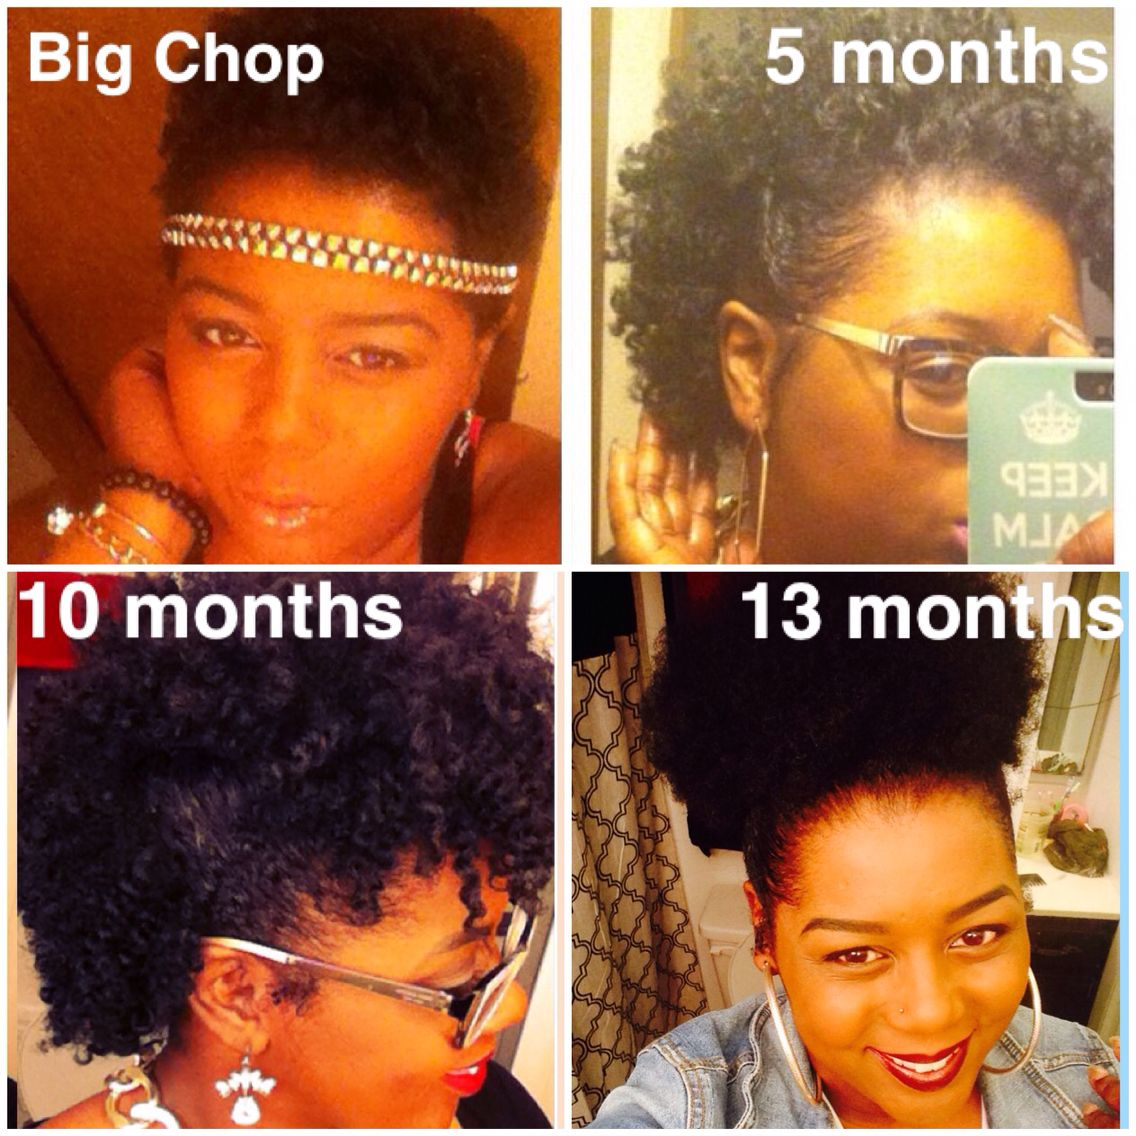 My Natural Hair Journey 13 Months Post Big Chop Natural Hair Hair Growth Inspiration Natural Hair Journey Big Chop Natural Hair Natural Hair Journey Growth